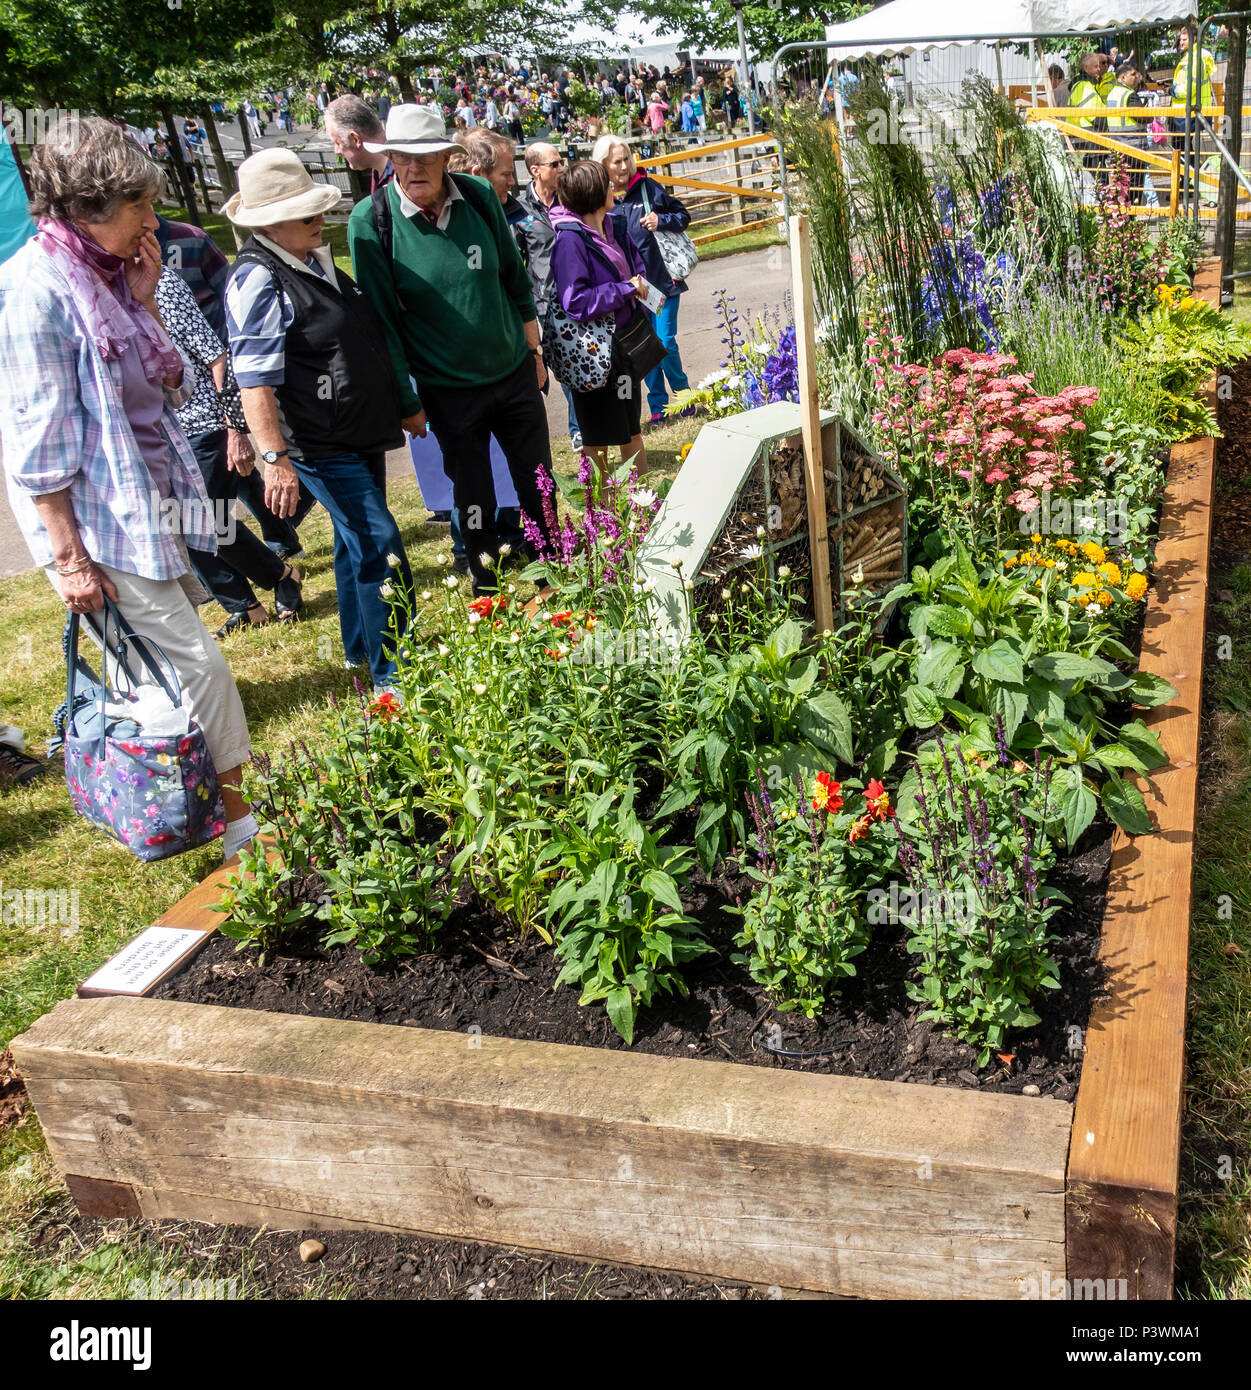 Visitors evaluating one of the Beautiful Borders entries at the Gardeners' World Live Show at the NEC, Birmingham, England, UK - Stock Image